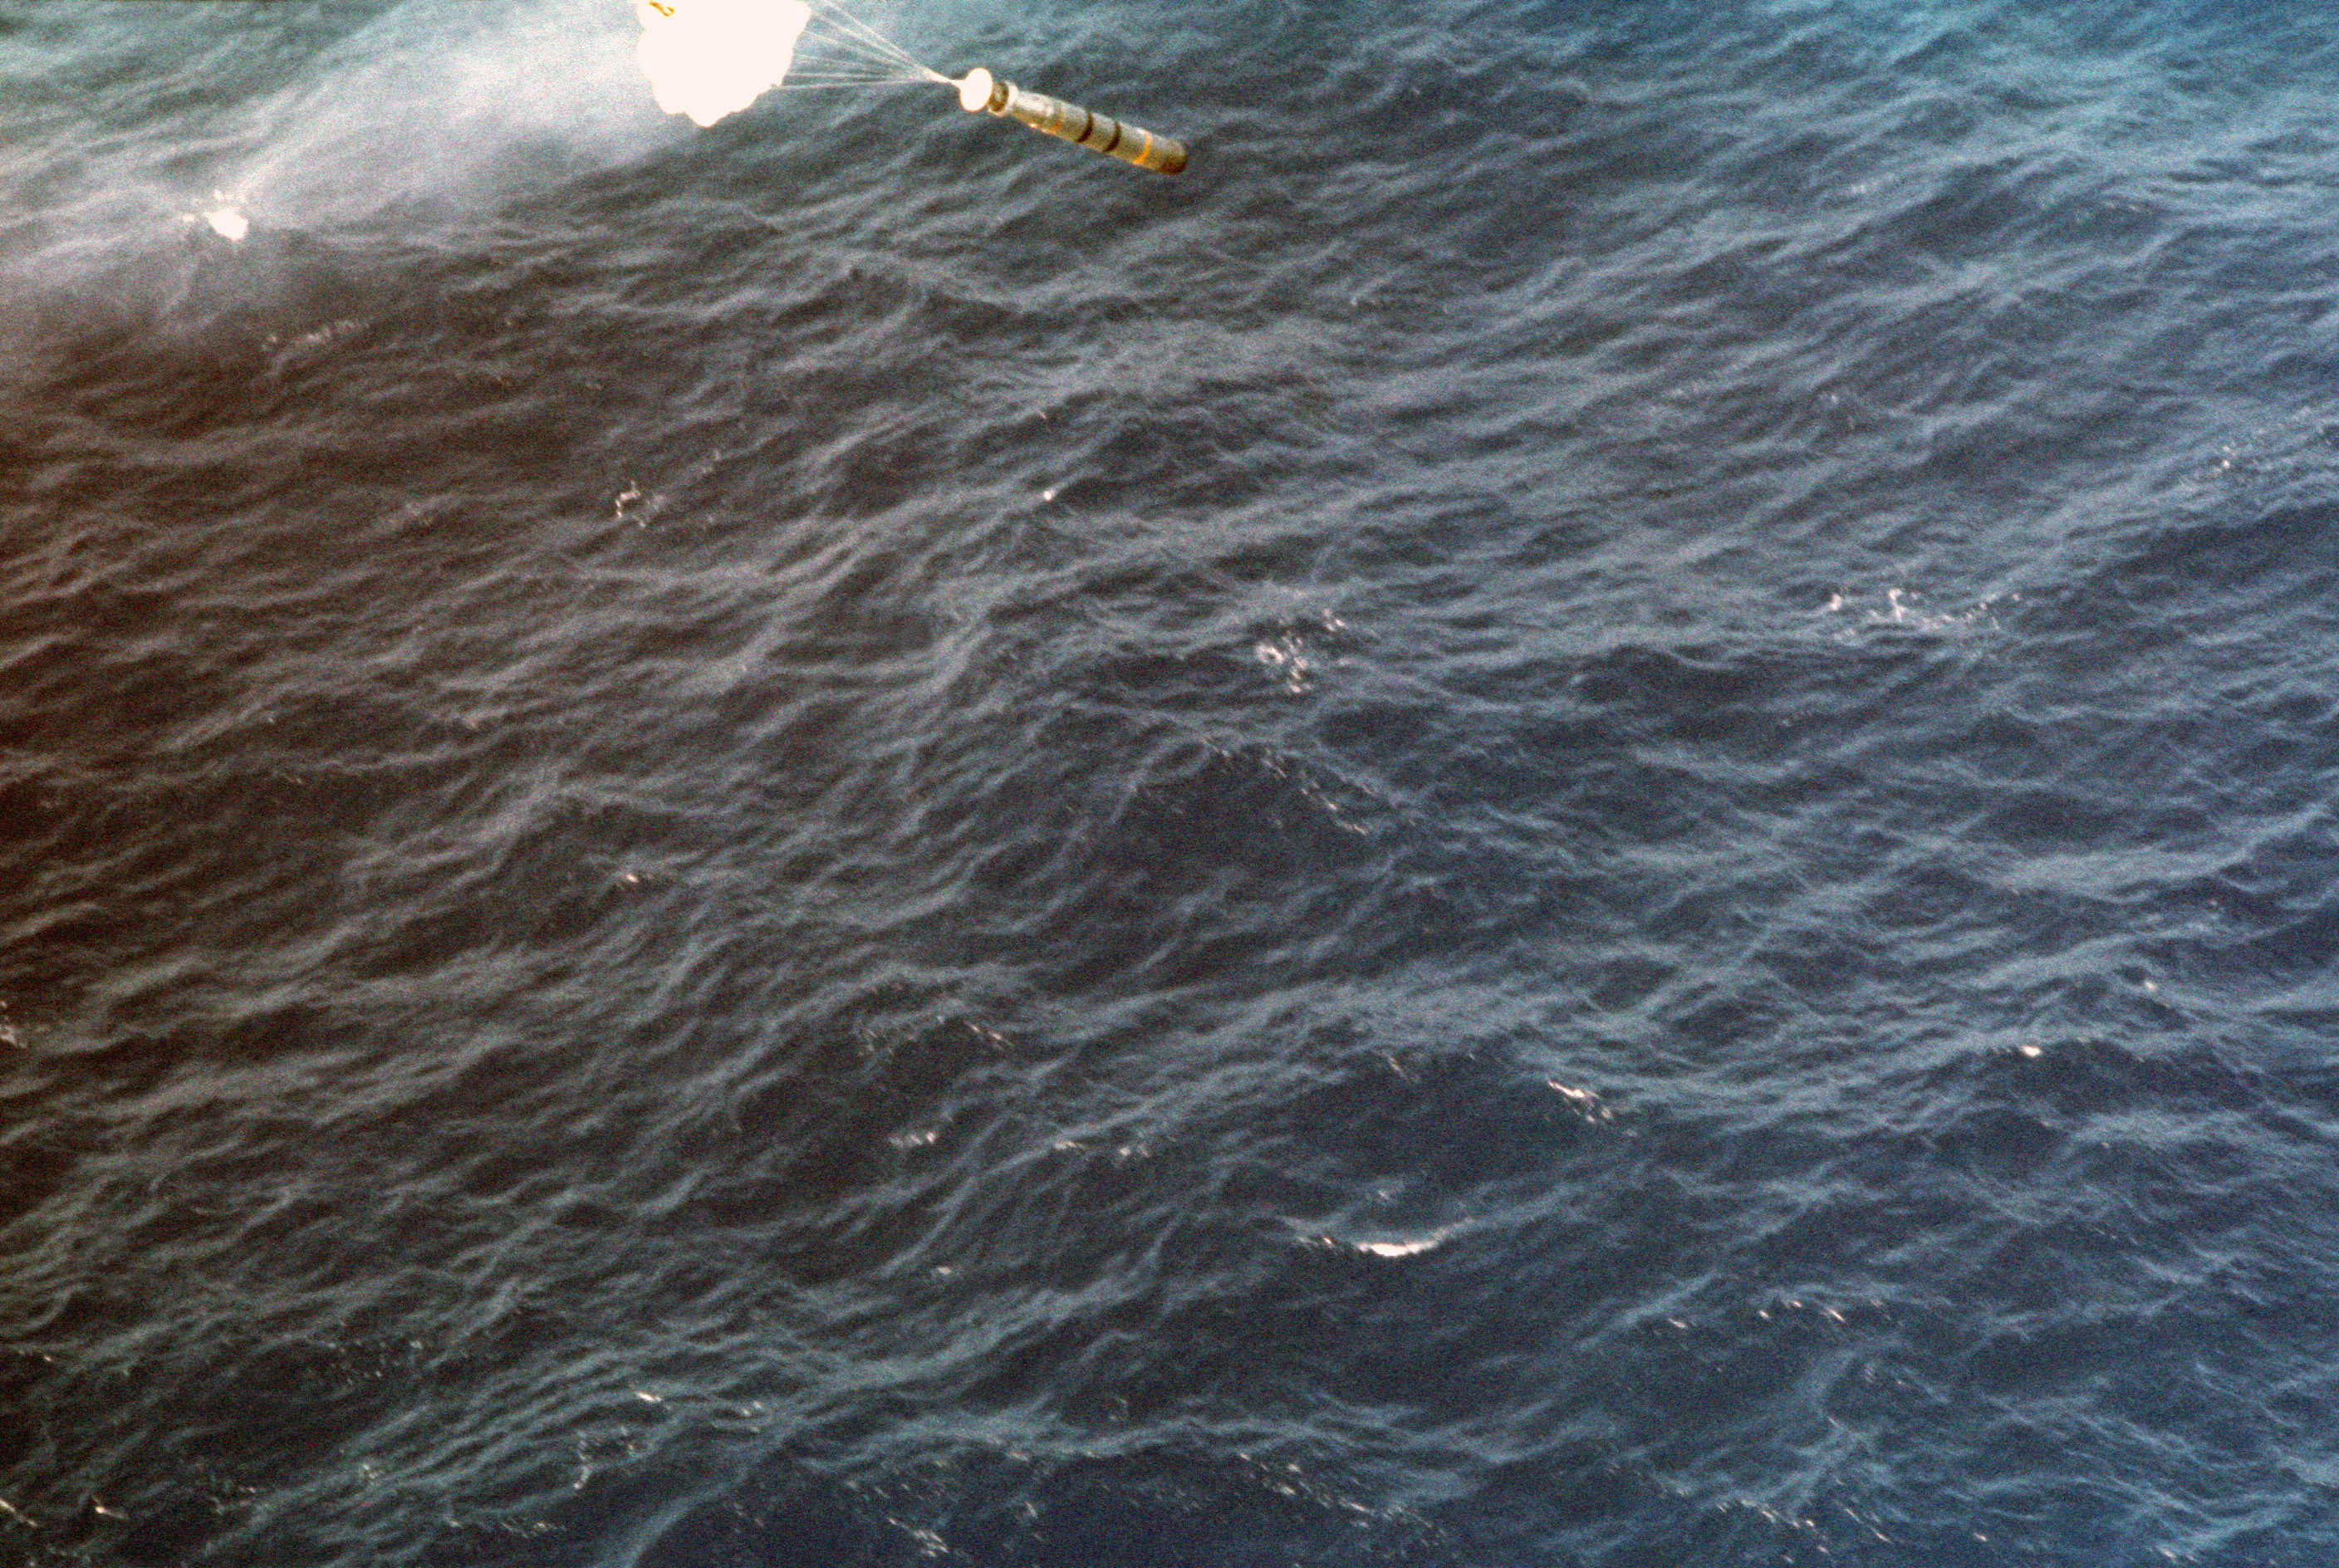 A Mark 46 torpedo is released from an SH-3 Sea King helicopter conducting an anti-submarine warfare exercise